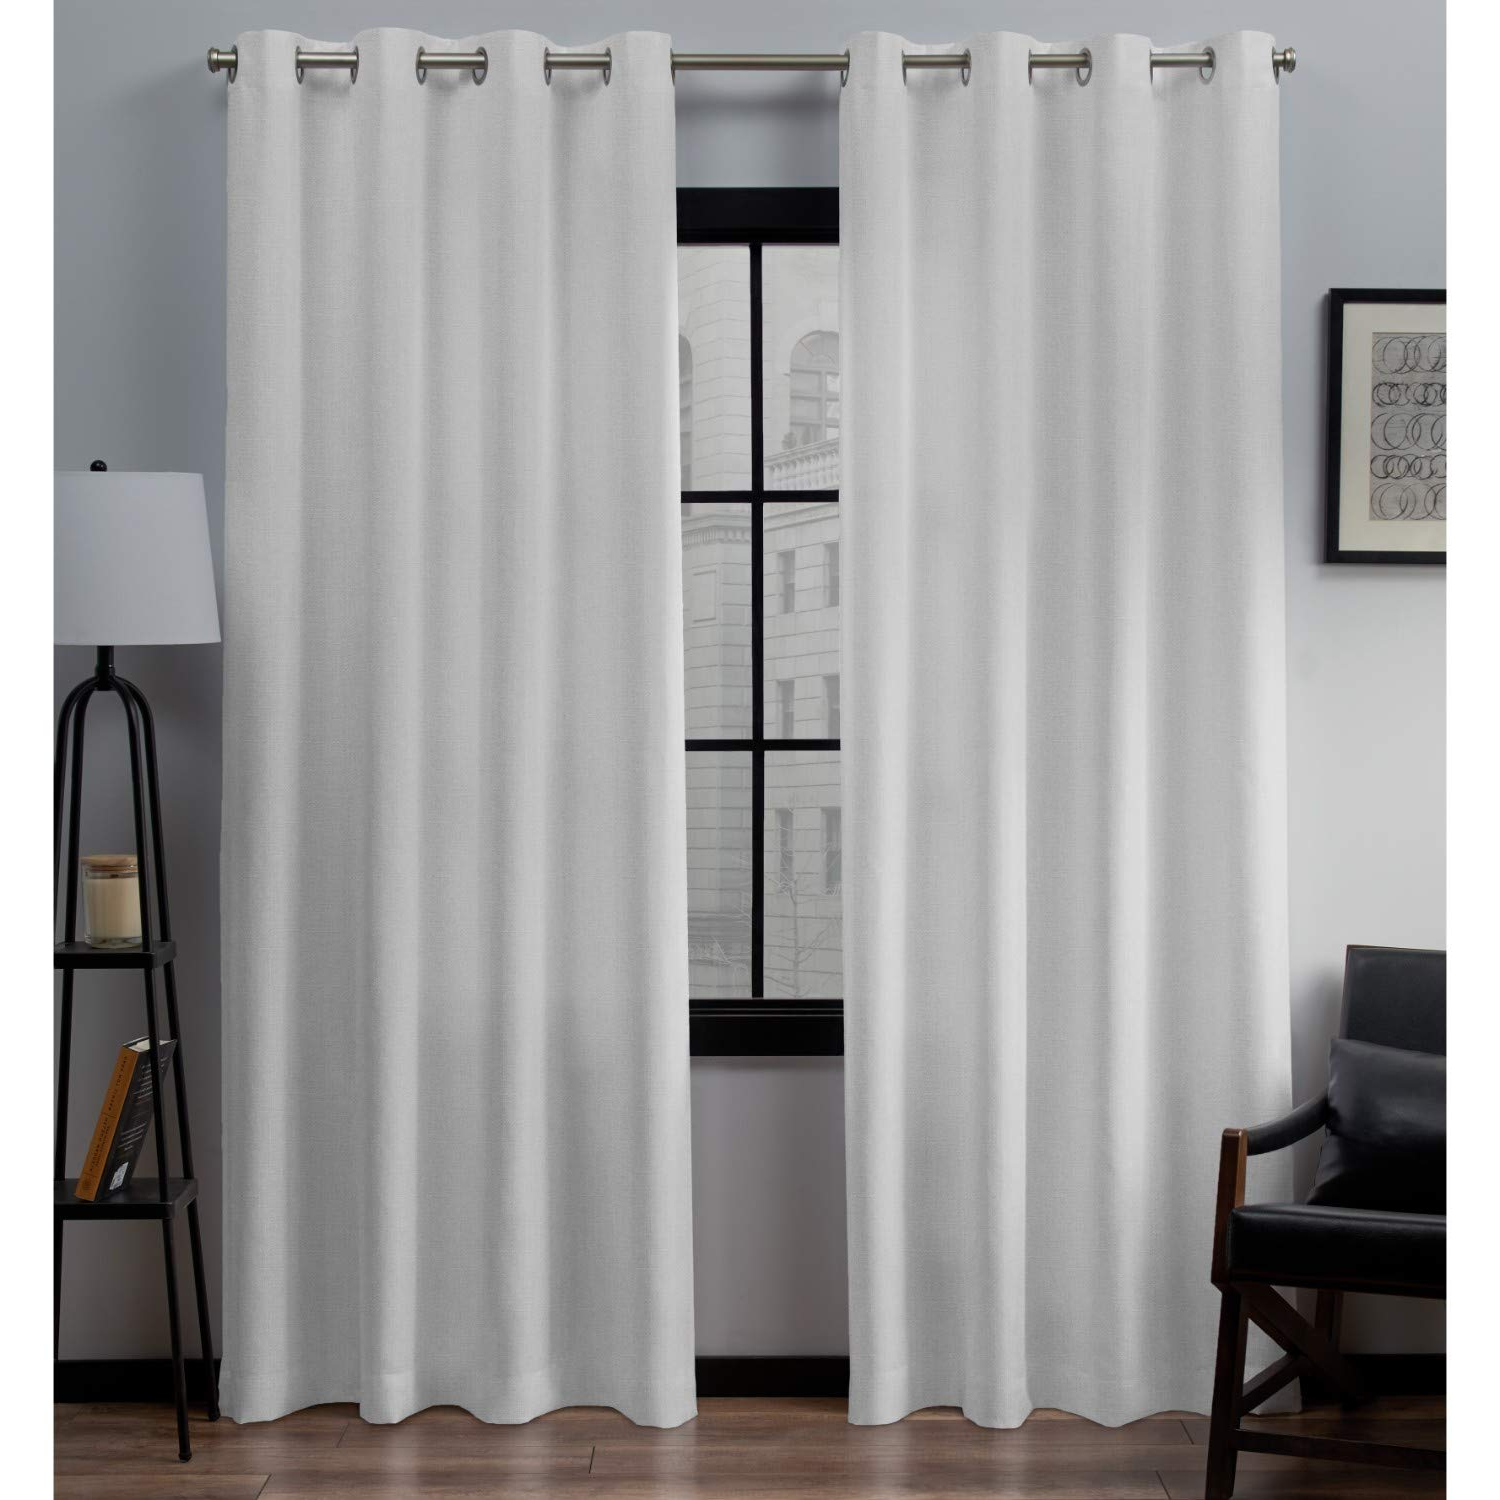 "Sugar Creek Grommet Top Loha Linen Window Curtain Panel Pairs With 2020 Exclusive Home Curtains Loha Linen Window Curtain Panel Pair, 54"" X 108"",  Winter White (View 17 of 20)"